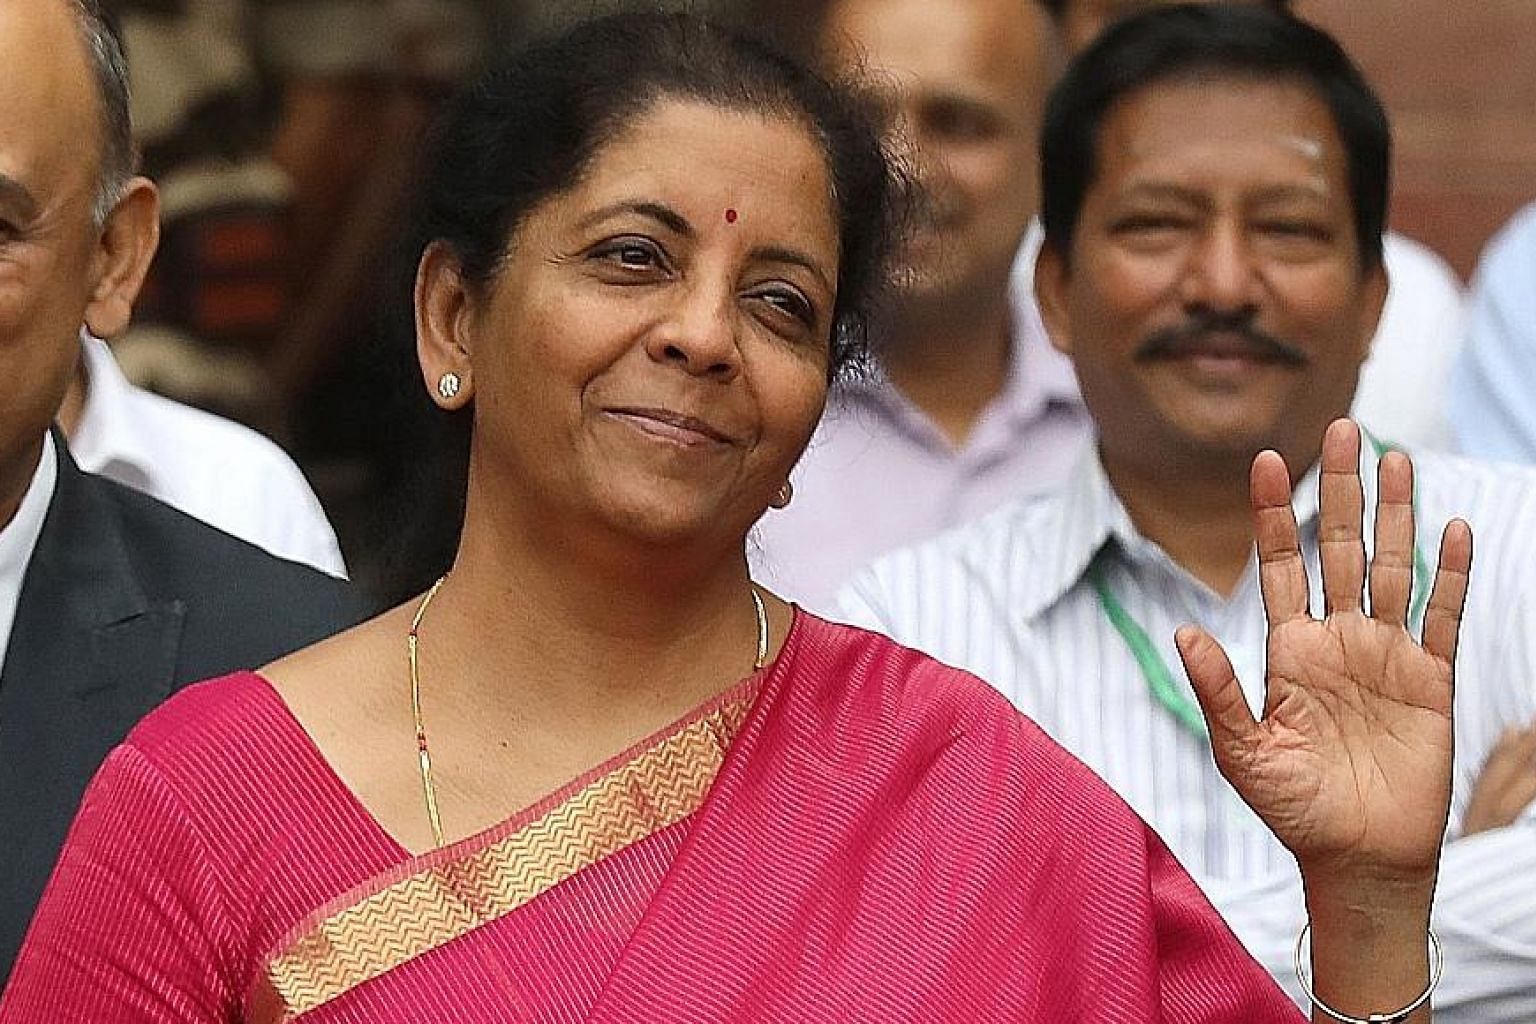 India's Finance Minister Nirmala Sitharaman departed from tradition yesterday and carried the Budget documents in a bahi khata, a traditional ledger, instead of the usual colonial-era suitcase. PHOTO: EPA-EFE